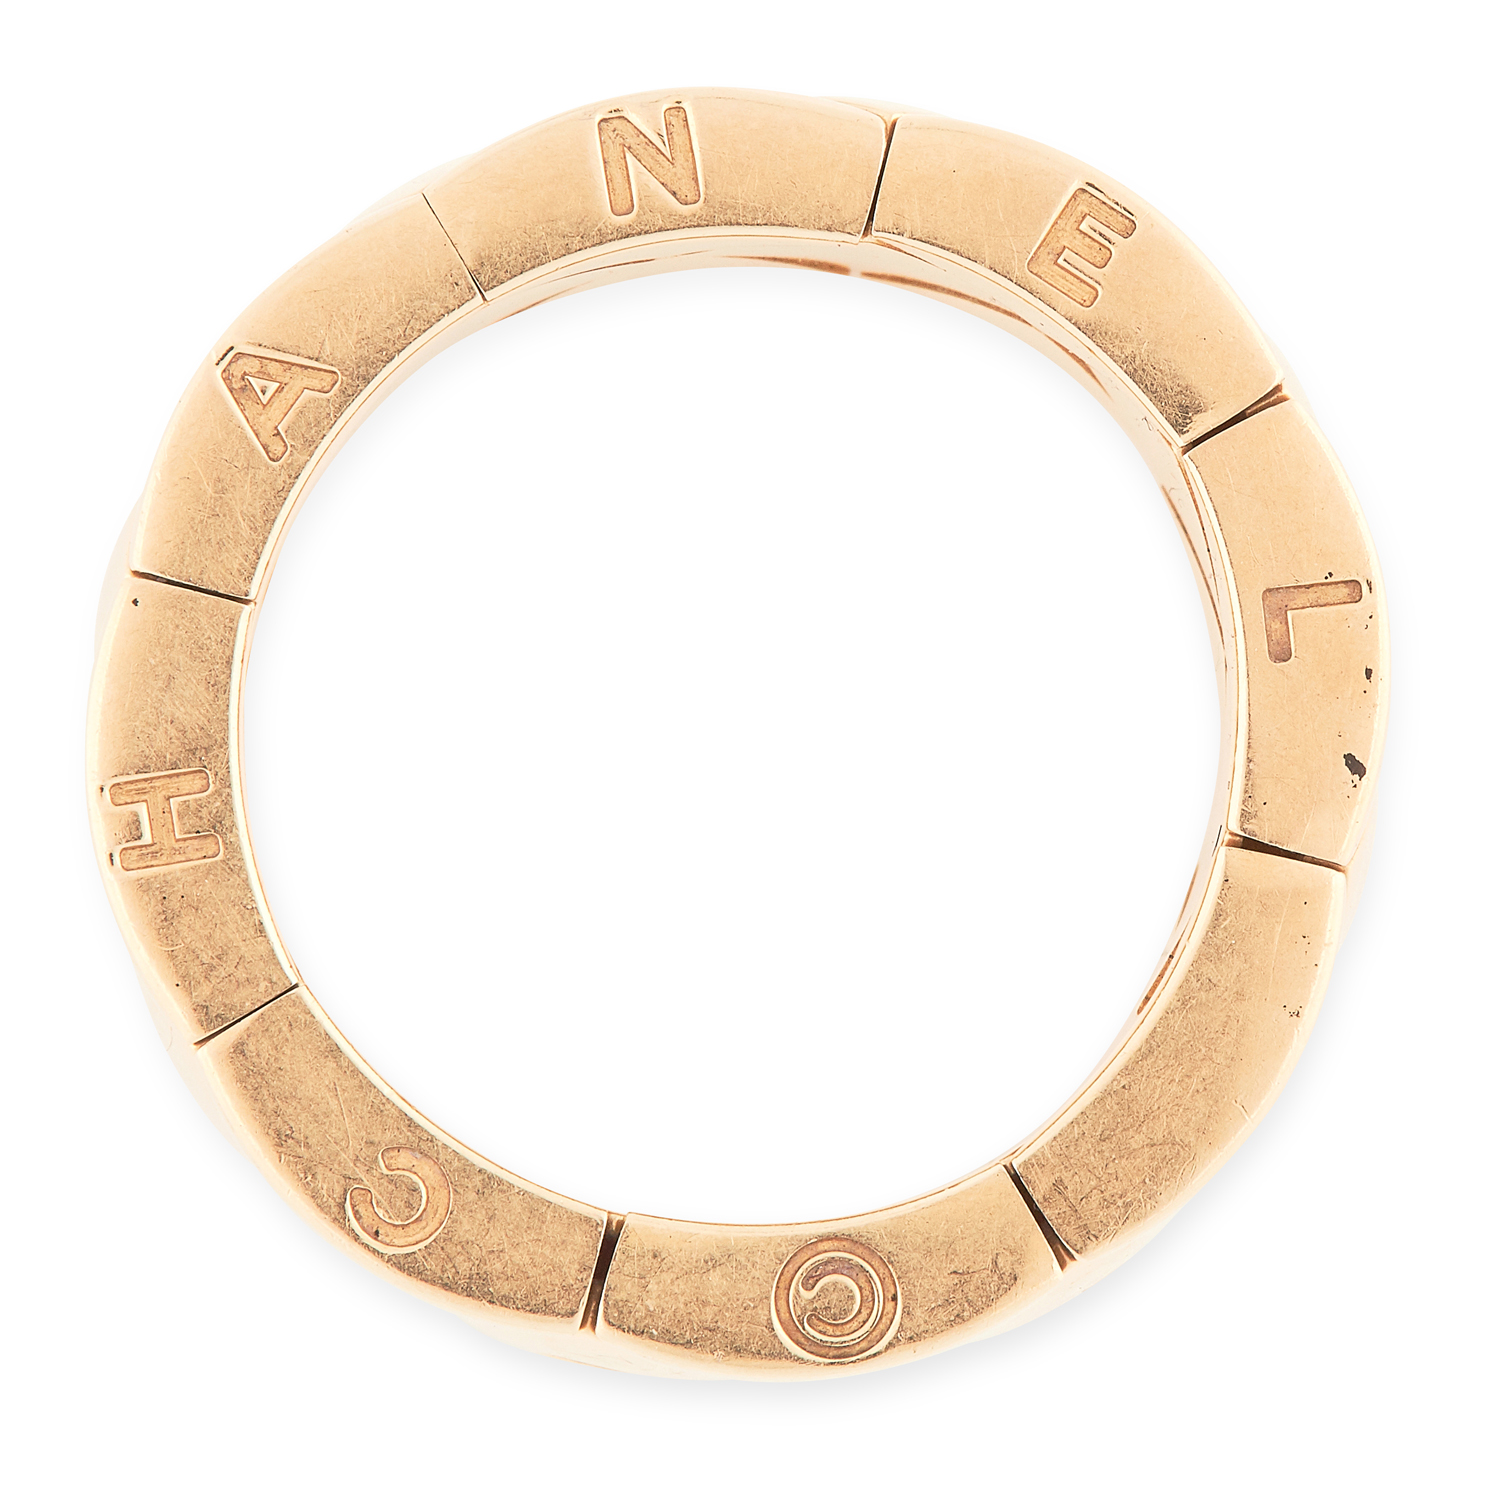 A COCO CRUSH DRESS RING, CHANEL in 18ct yellow gold, the band comprised of articulated quilted - Image 2 of 2